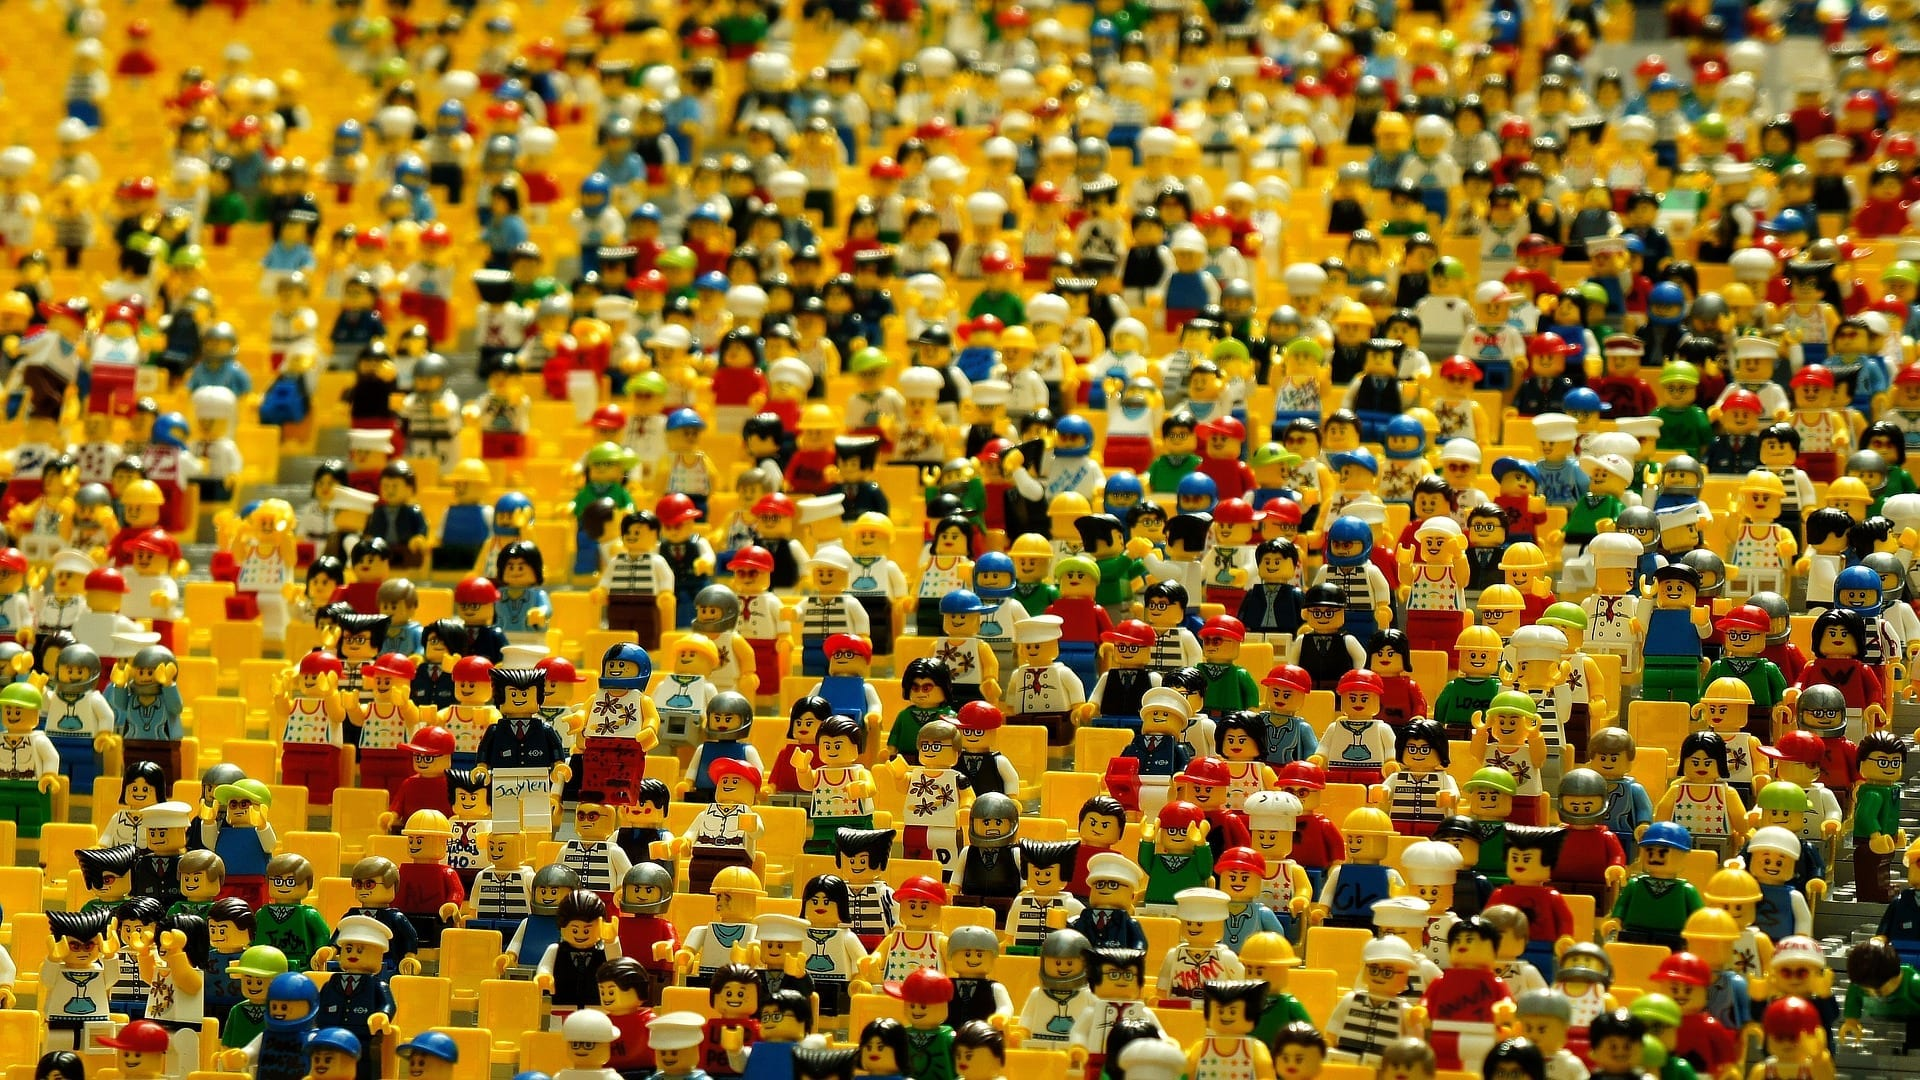 How to stand out in a crowd(ed tradeshow)